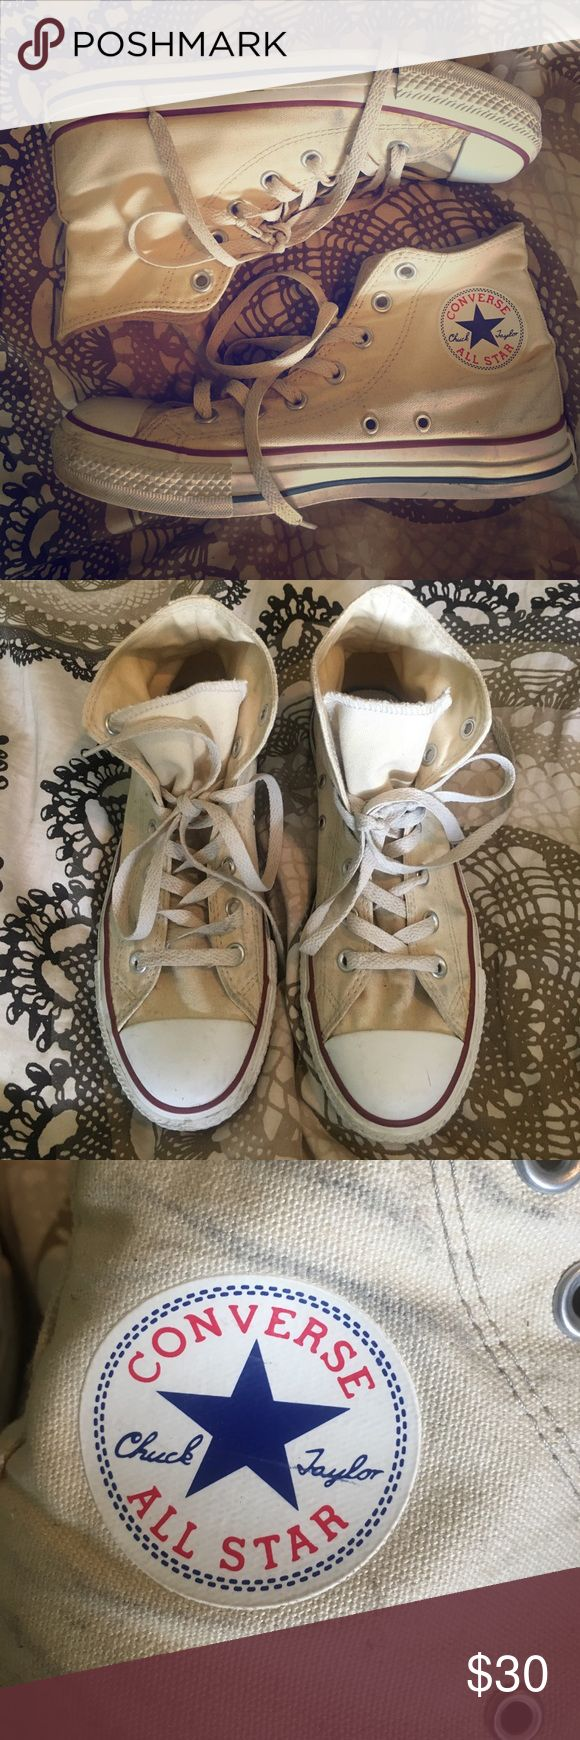 Off white Converse high tops Off white high top converse shoes. Lightly worn, a few scuffs. Can be easily cleaned. Cute hipster sporty style. Blue and red accents. Converse Shoes Sneakers